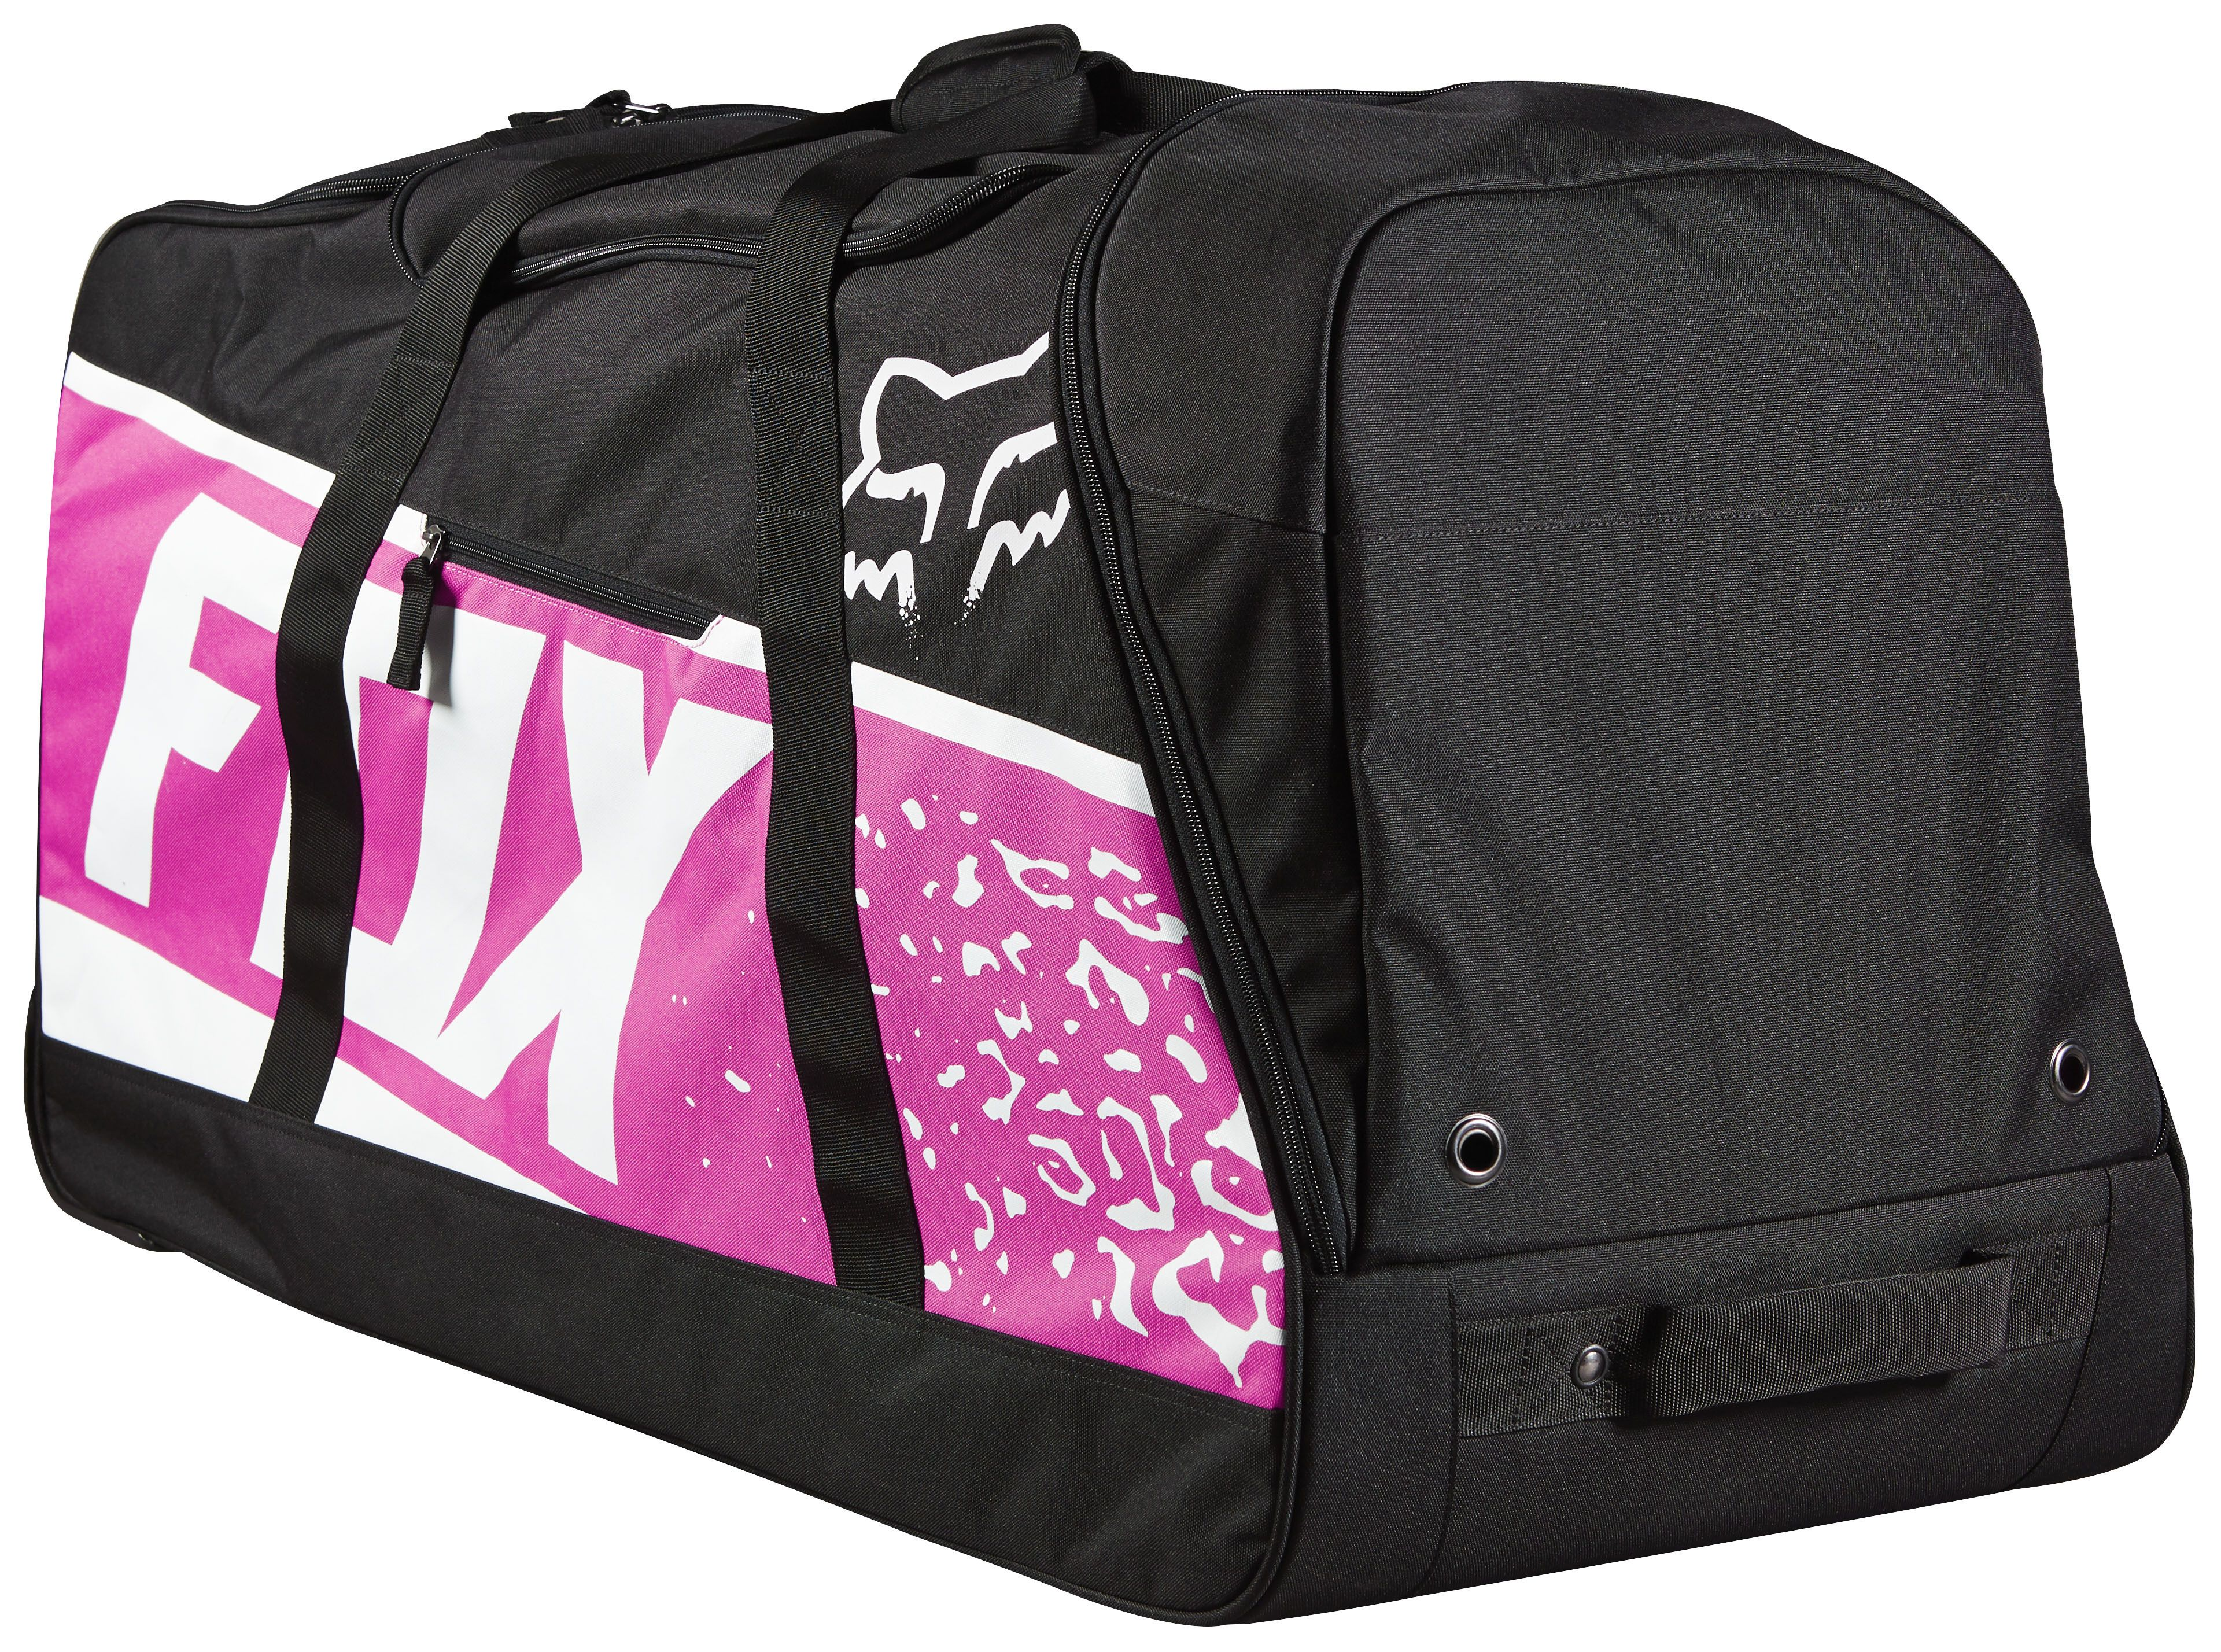 Fox Racing Shuttle 180 Divizion Gear Bag 30 44 98 Off Revzilla